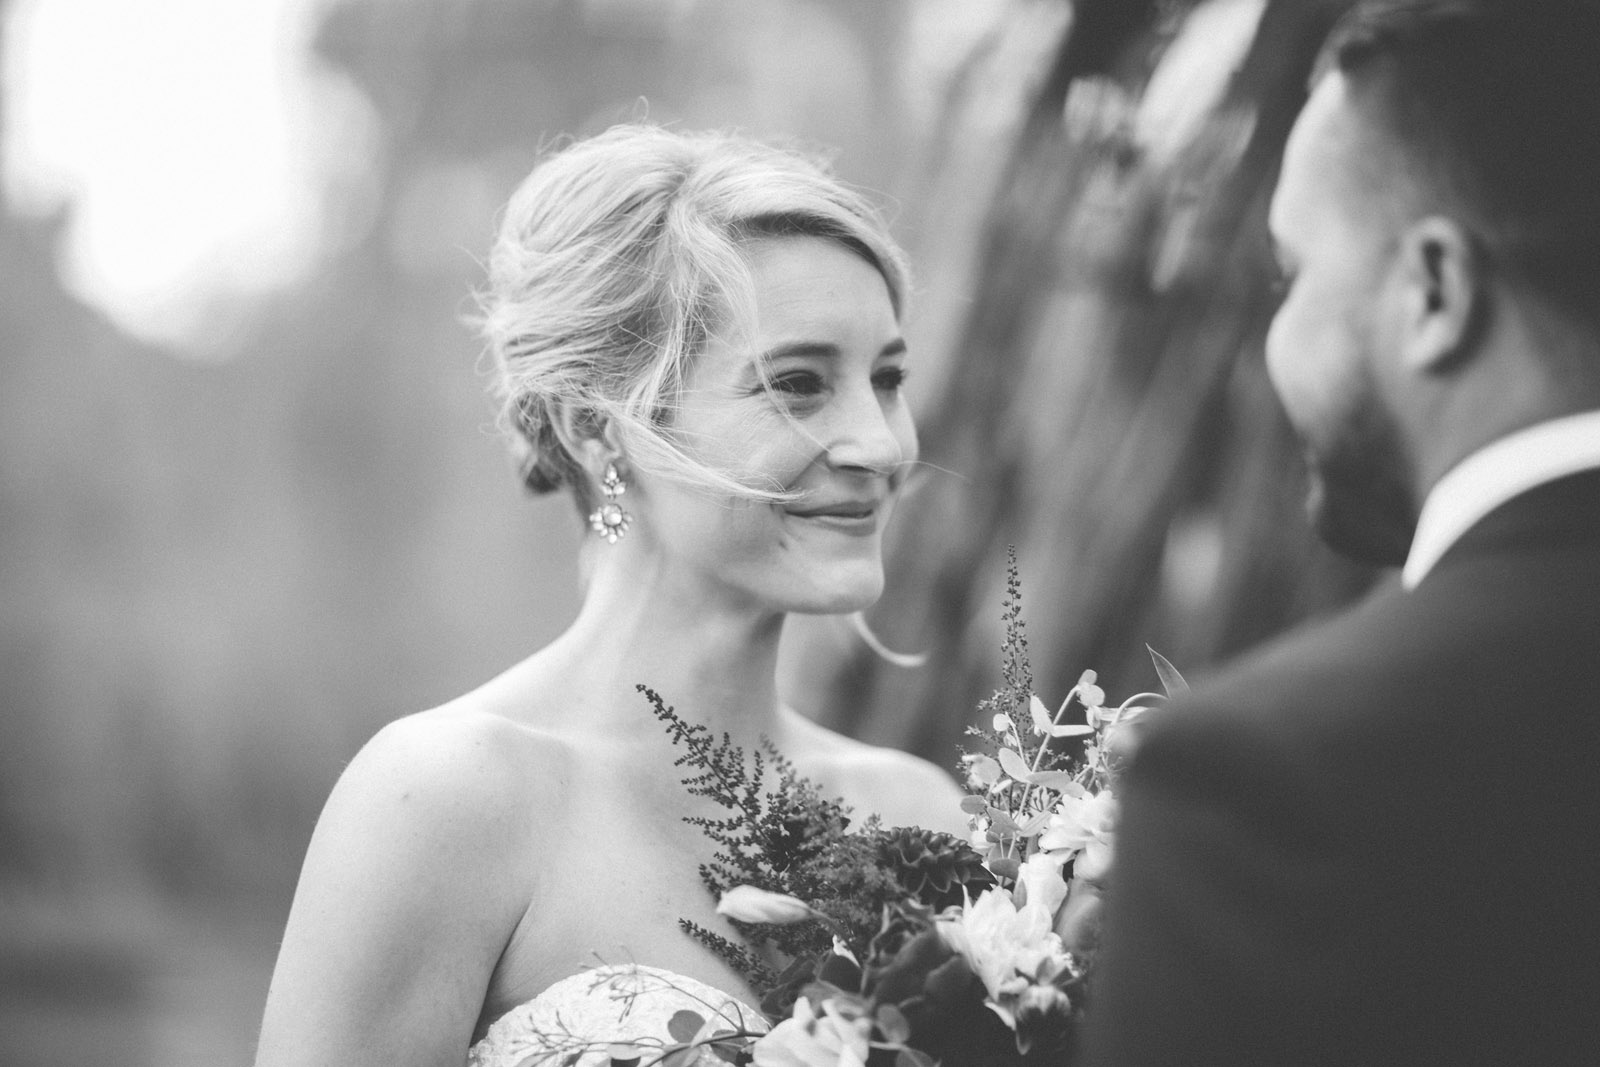 061-bride-smiling-at-groom-during-private-elopement-wedding-ceremony-at-durango-co